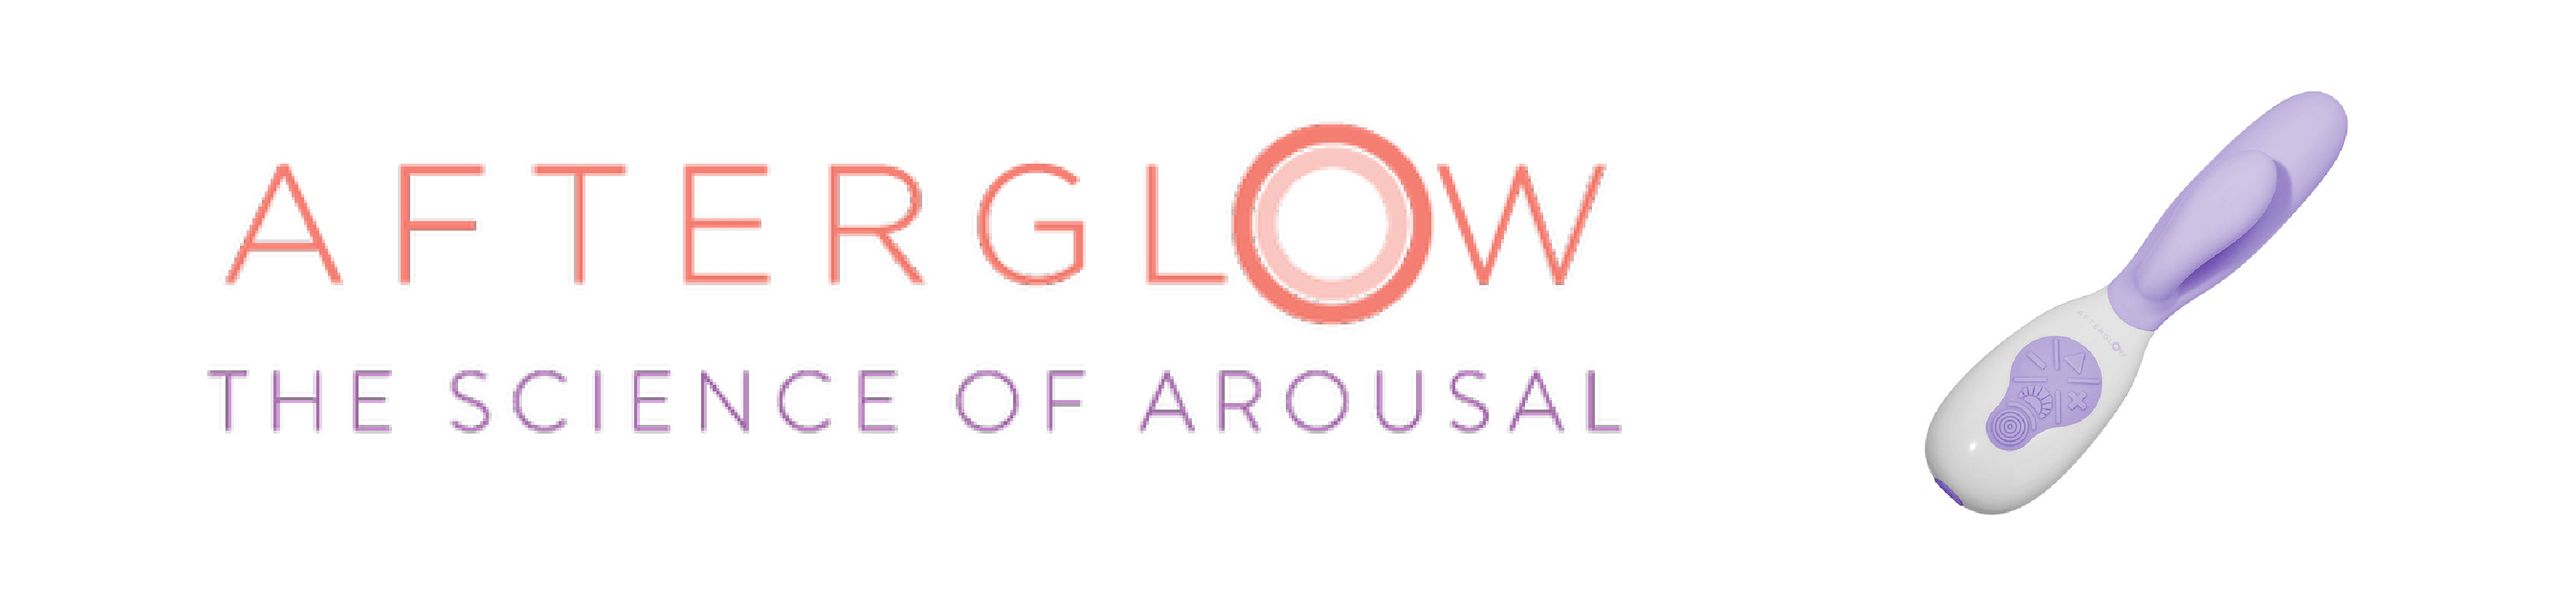 Afterglow The Science of Arousal Vibrator